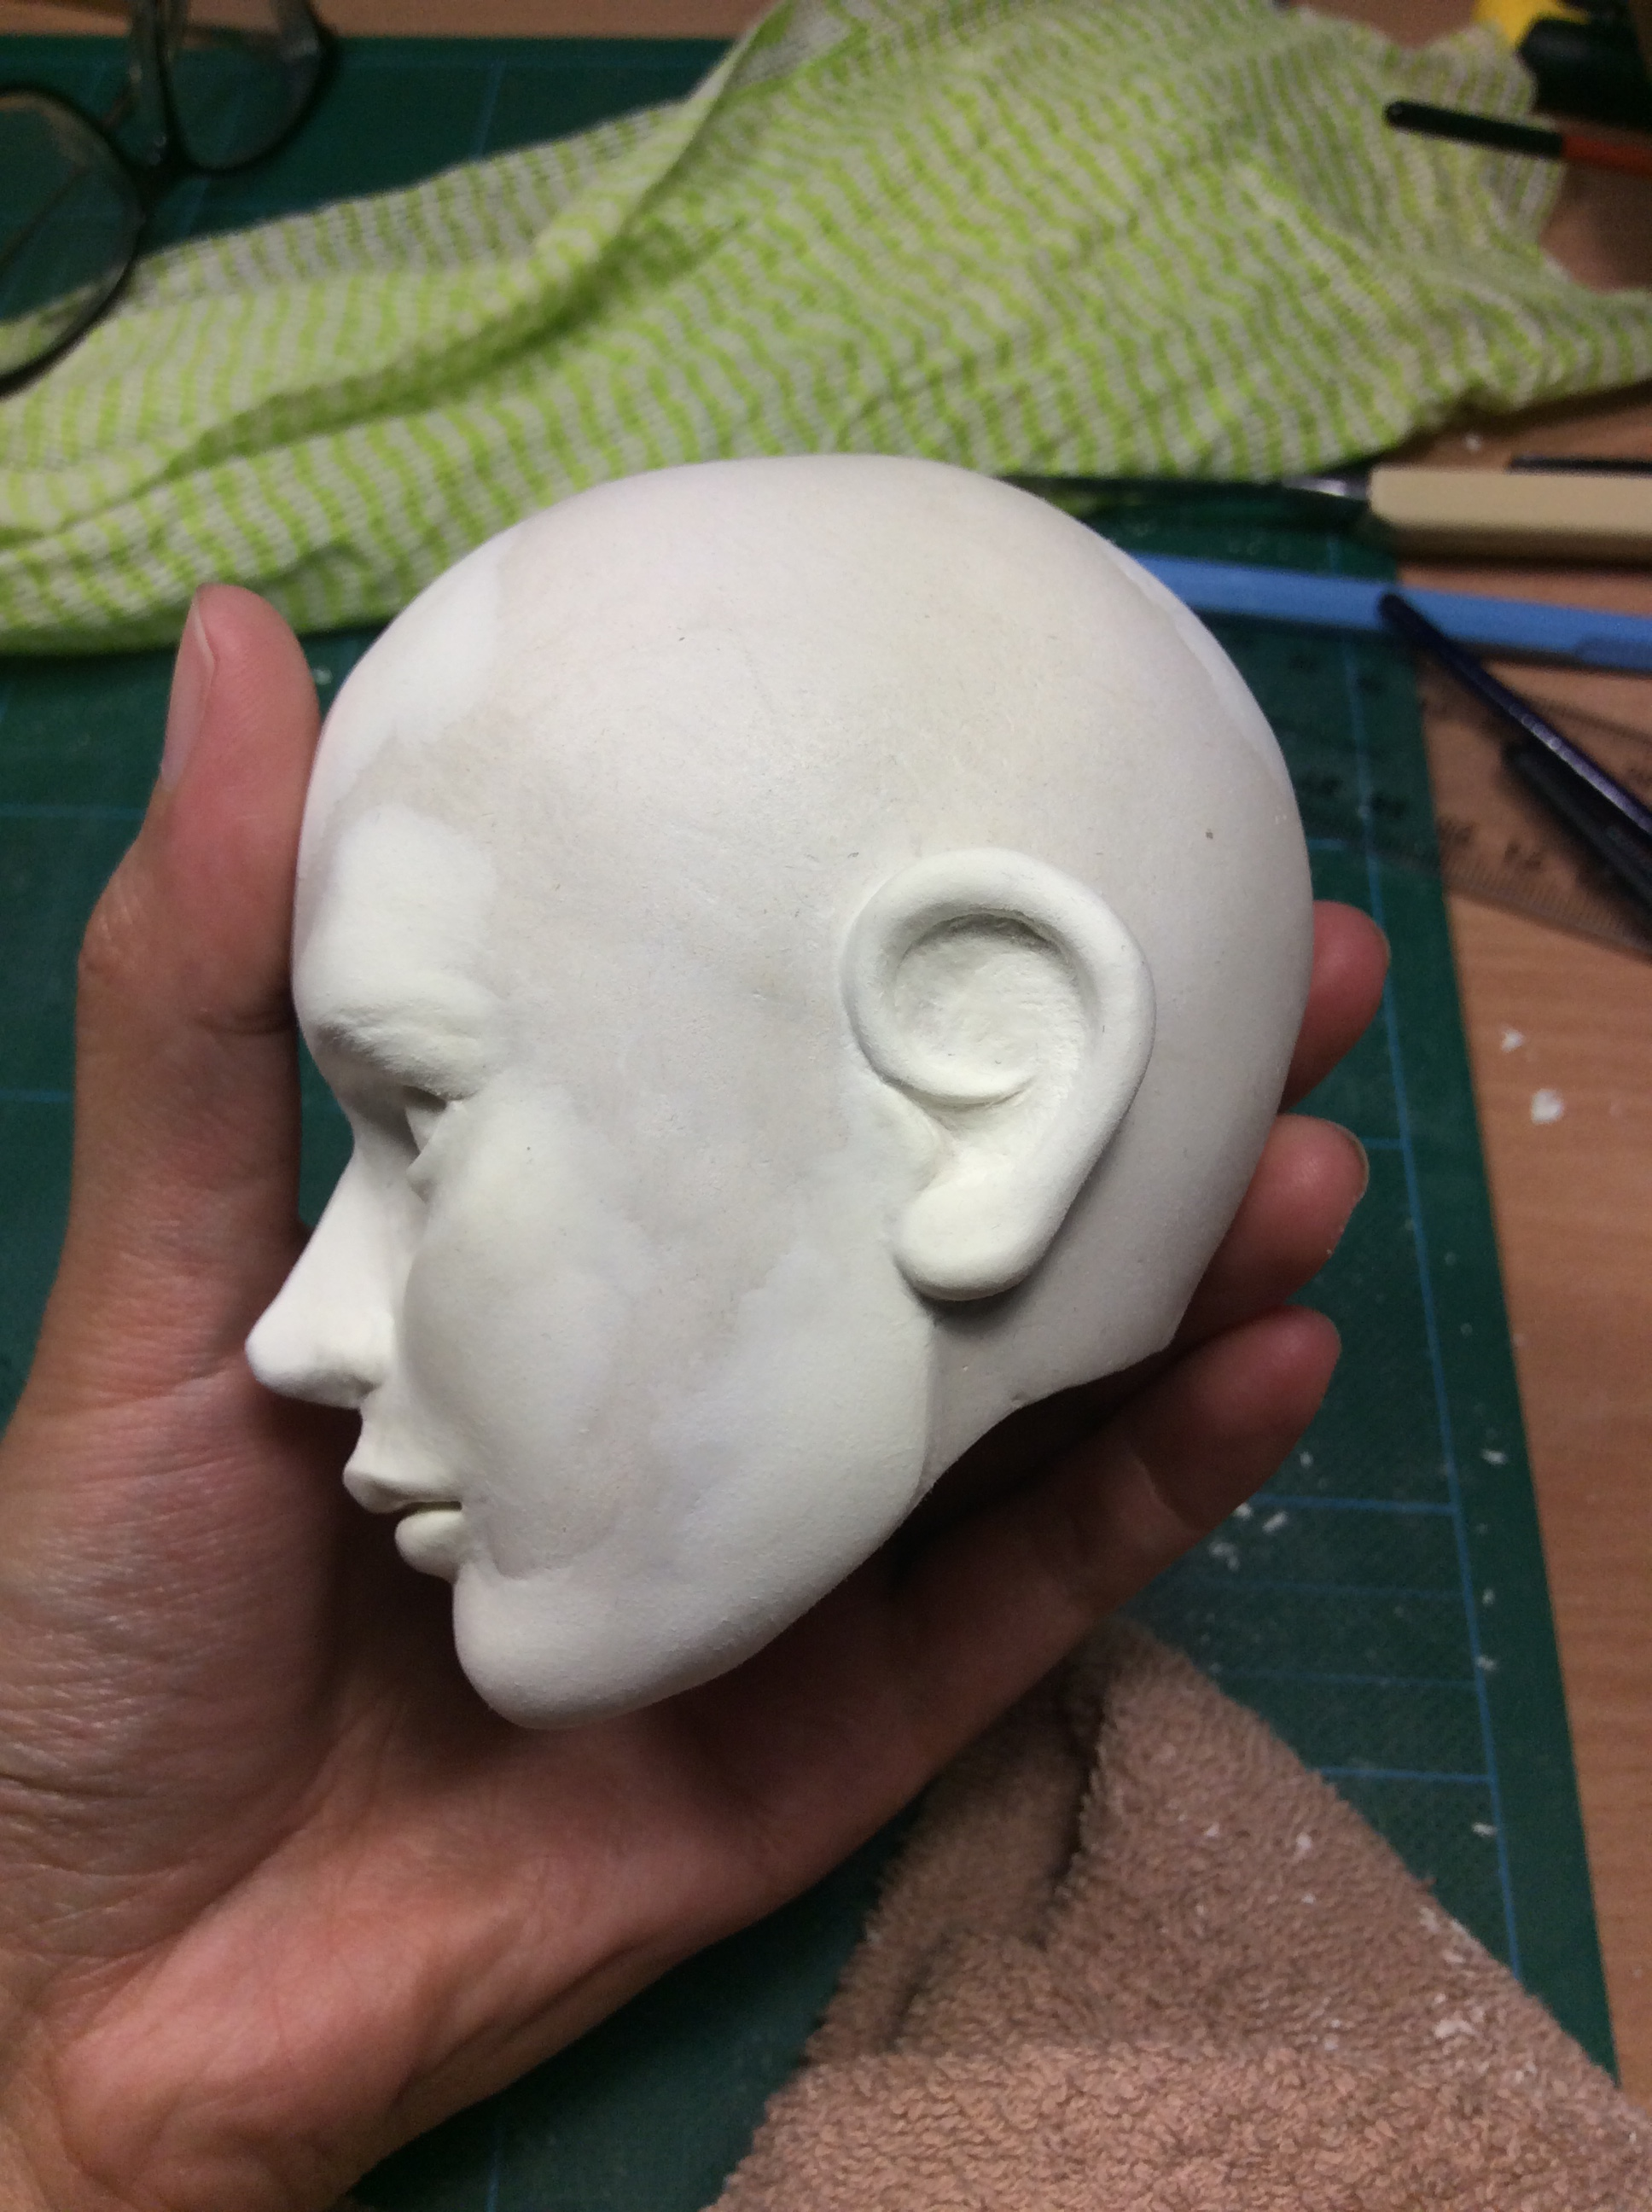 jemse---my-first-doll-head-making-progress-diary-part-3_31602575083_o